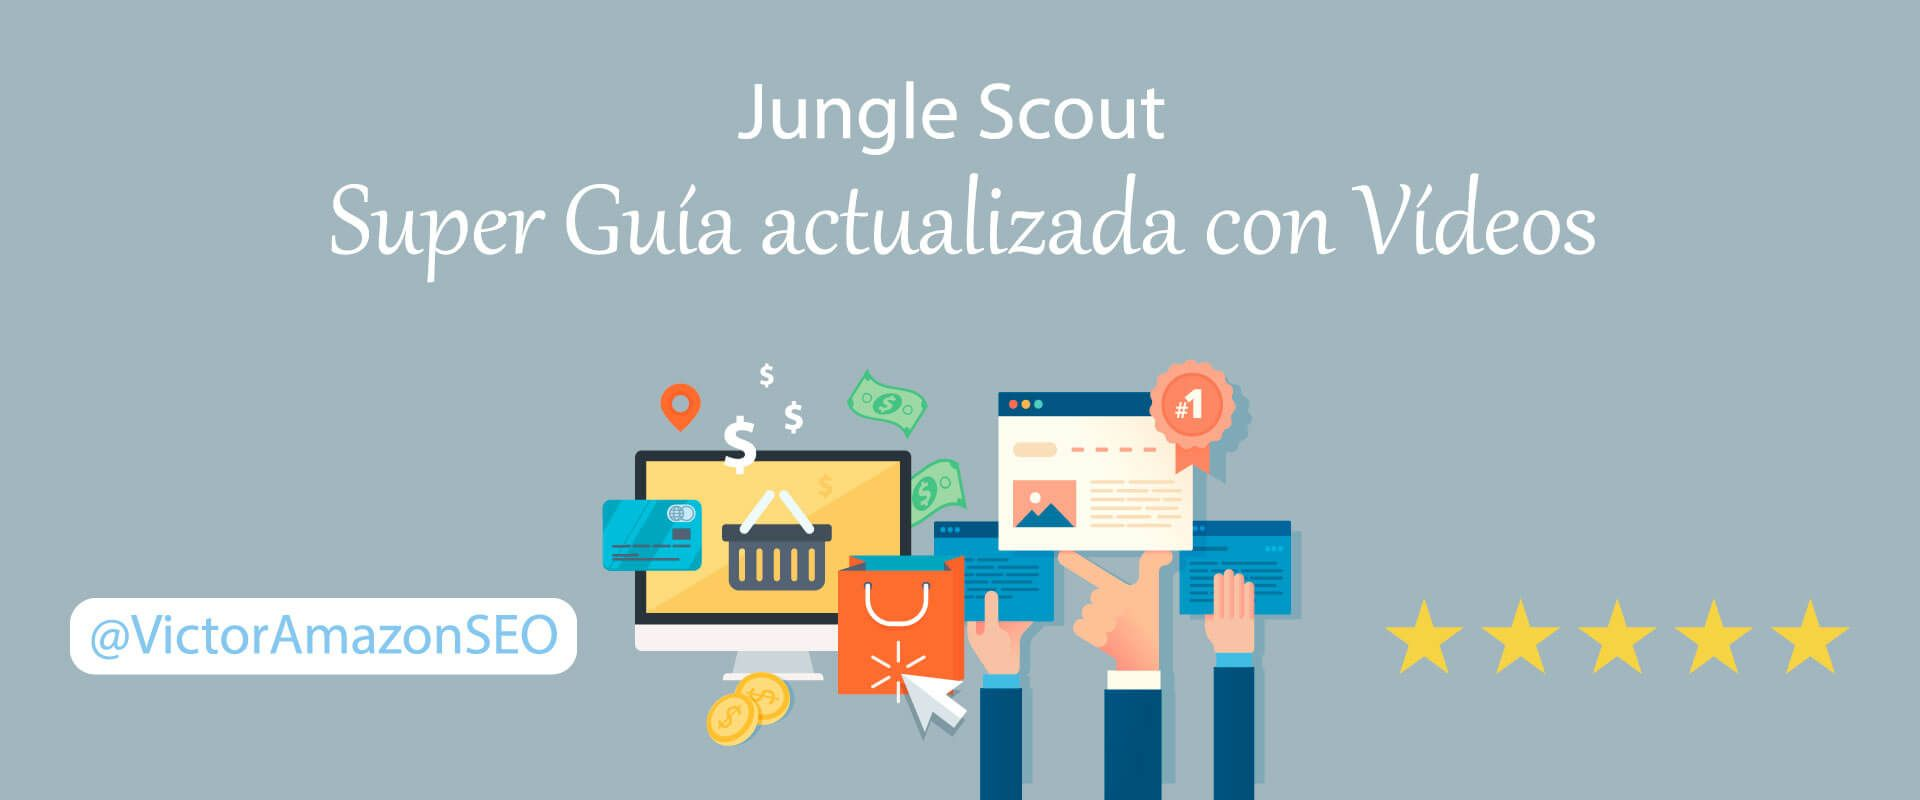 jungle scout gratis